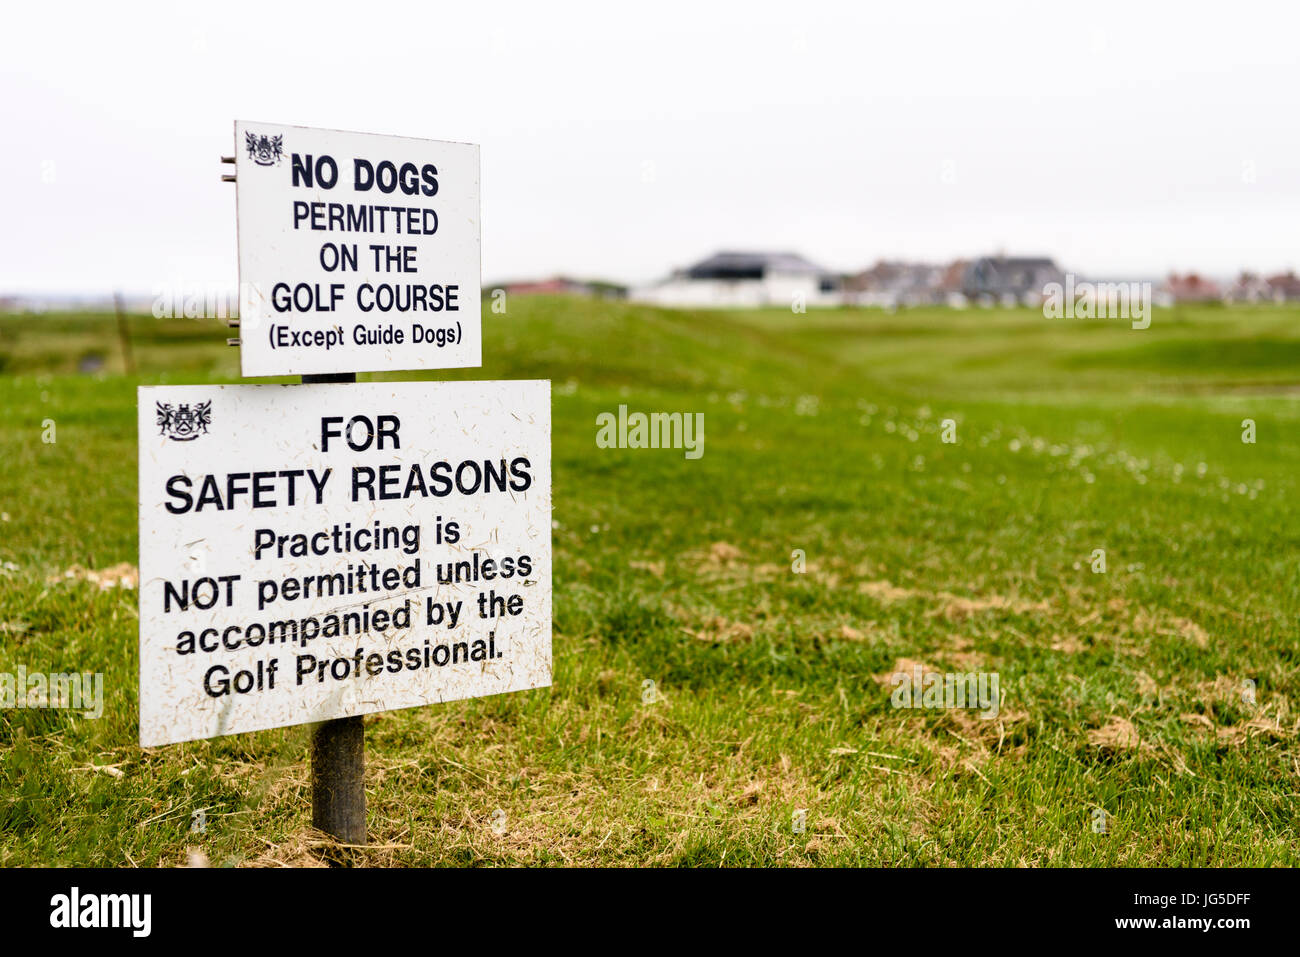 Signs on a golf course warning that dogs are not permitted, and no practicing is permitted without the golf professional. - Stock Image